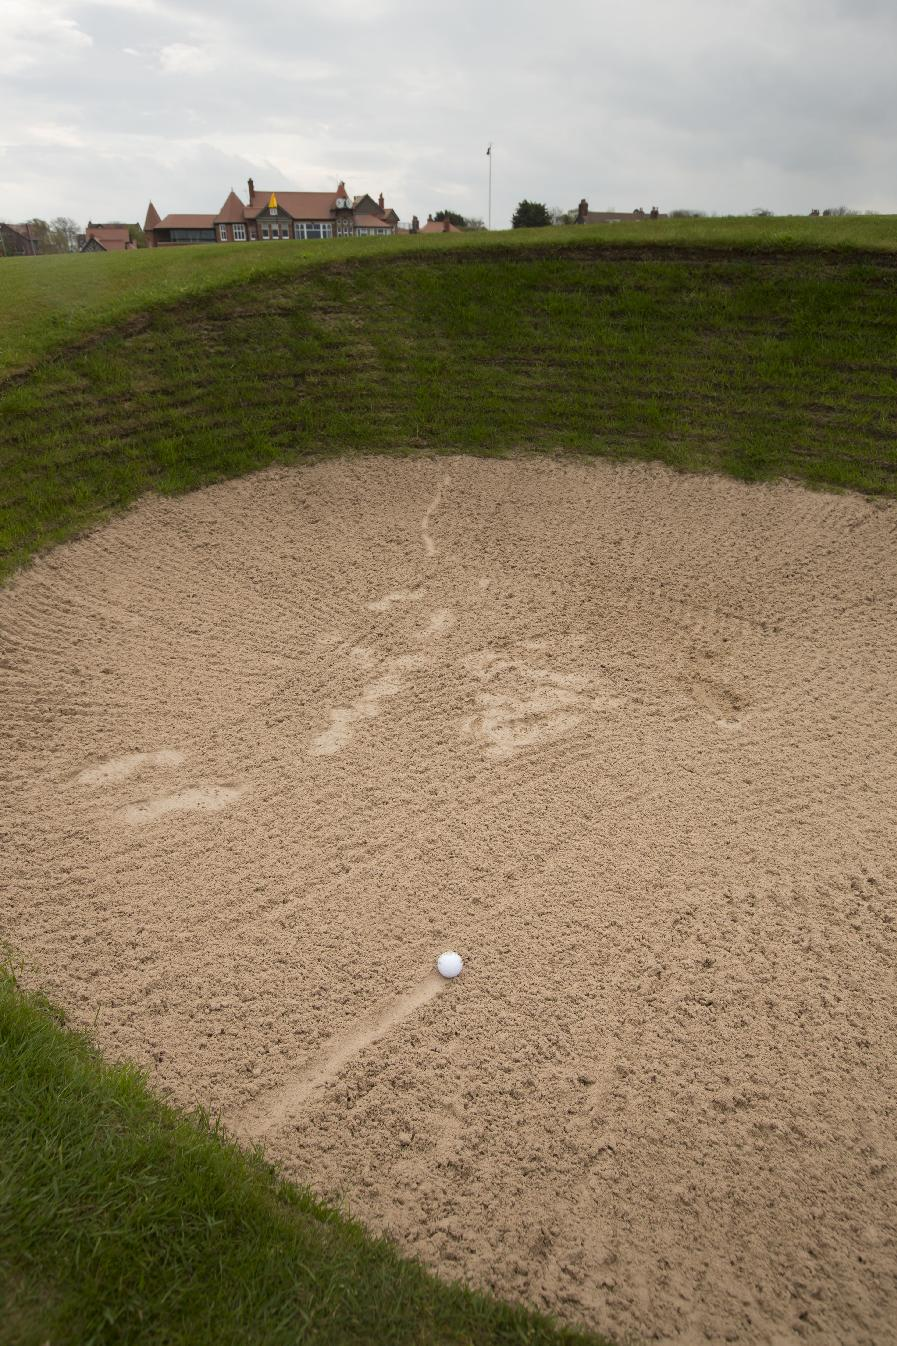 The clubhouse at Royal Liverpool Golf Club stands in the background as a ball lies in the bunker on the 18th hole before the British Open golf championships, Hoylake, England, Wednesday, April 23, 2014. The 2014 Open Championship which will be played at Royal Liverpool from July 17-20, 2014